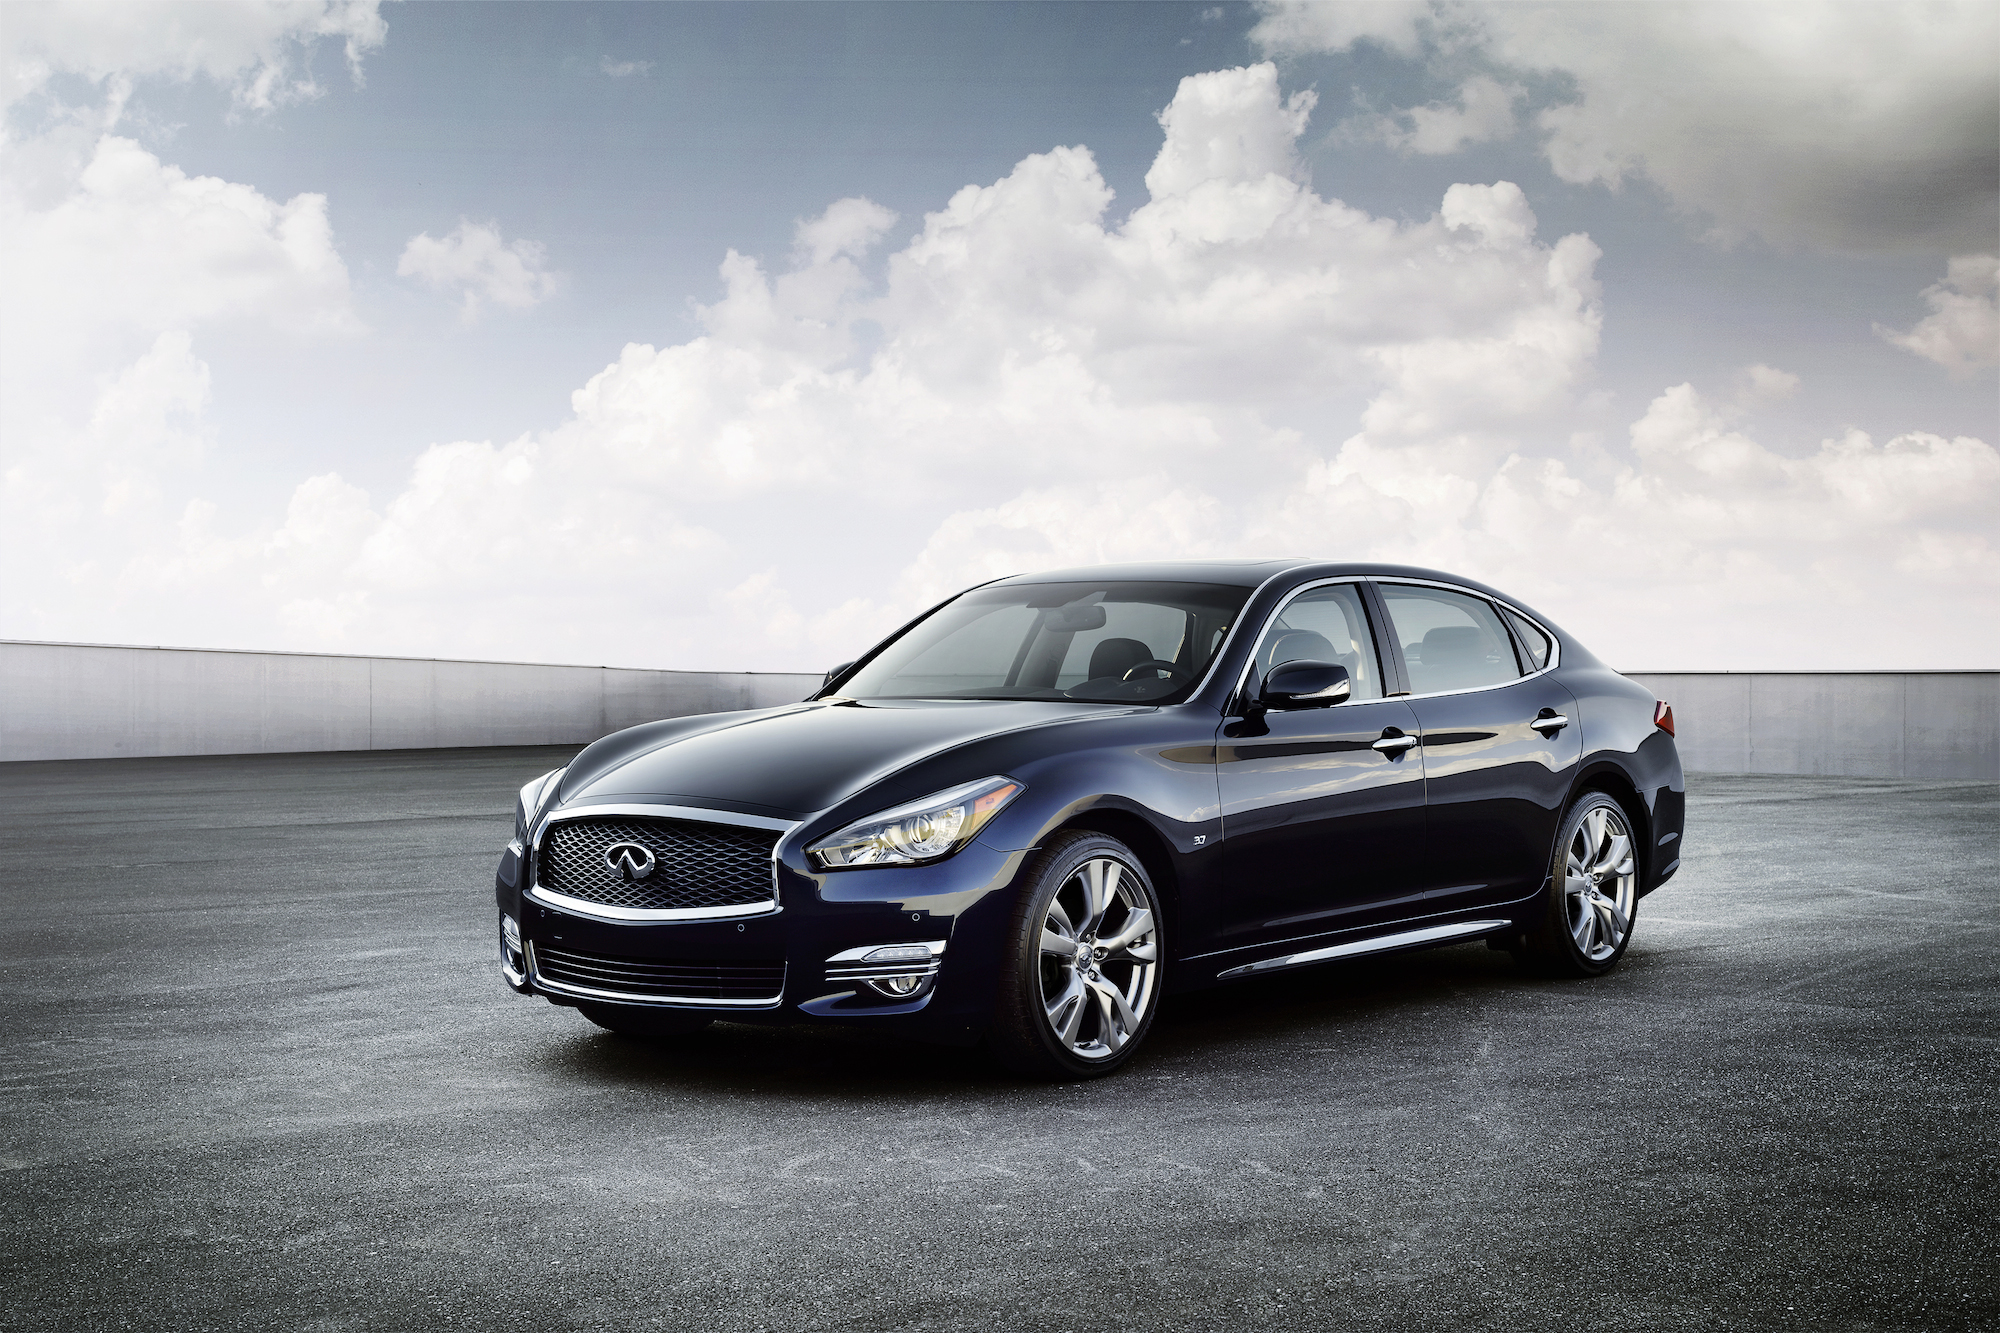 2015 Infiniti Q70 Gets New Look Long Wheelbase Model 2014 New York